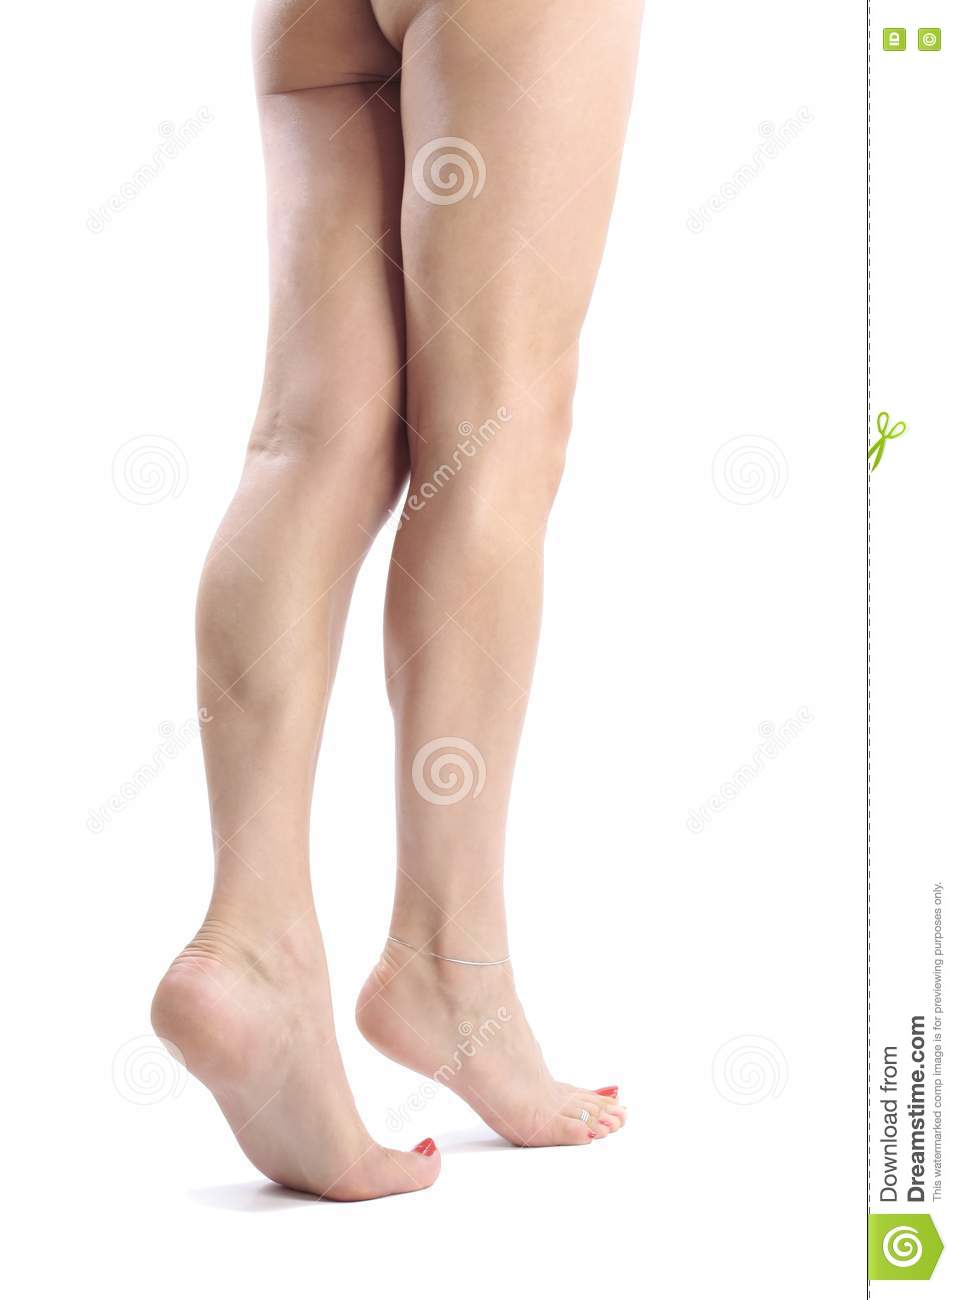 More similar stock images of beautiful woman legs and feet